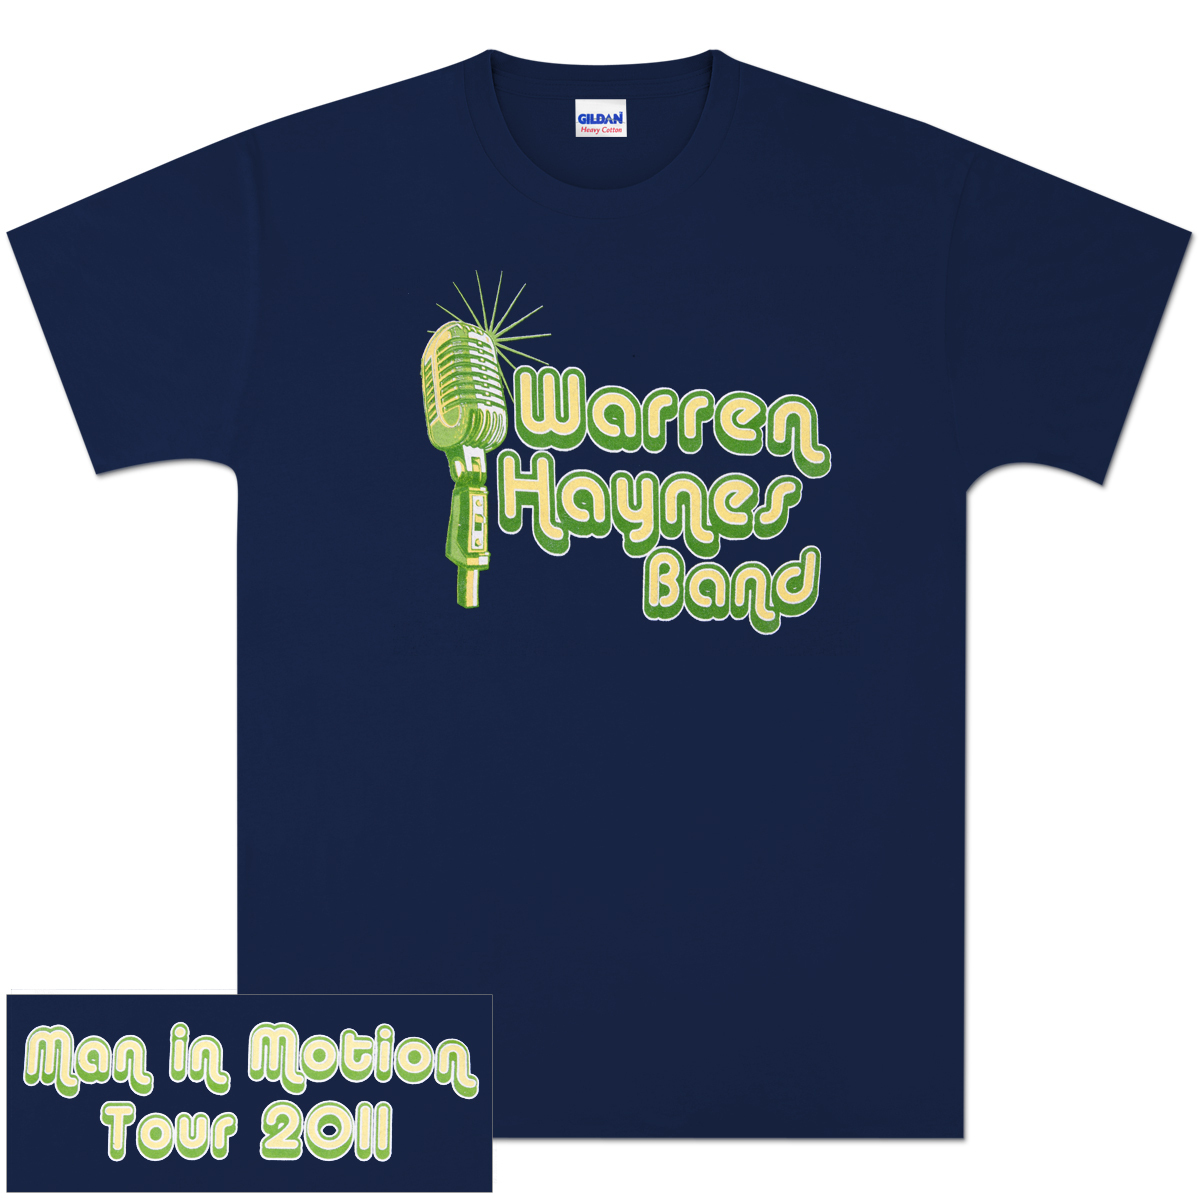 Warren Haynes Band Microphone Logo Tour T-Shirt